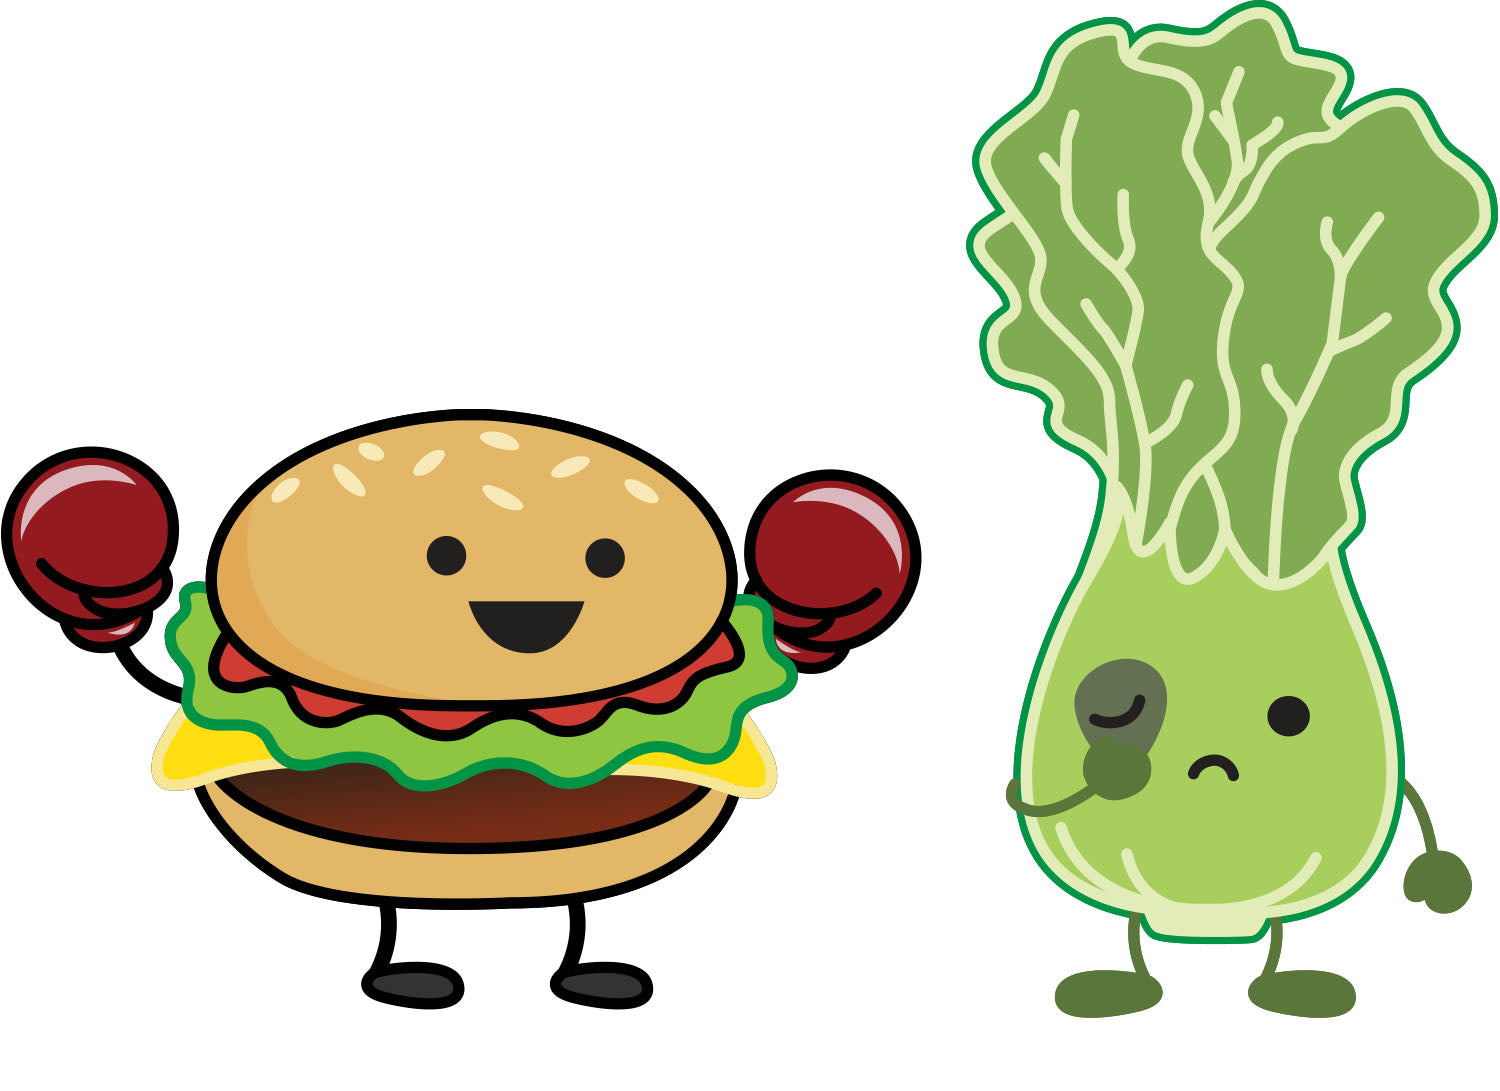 Burger vs Salad Tee